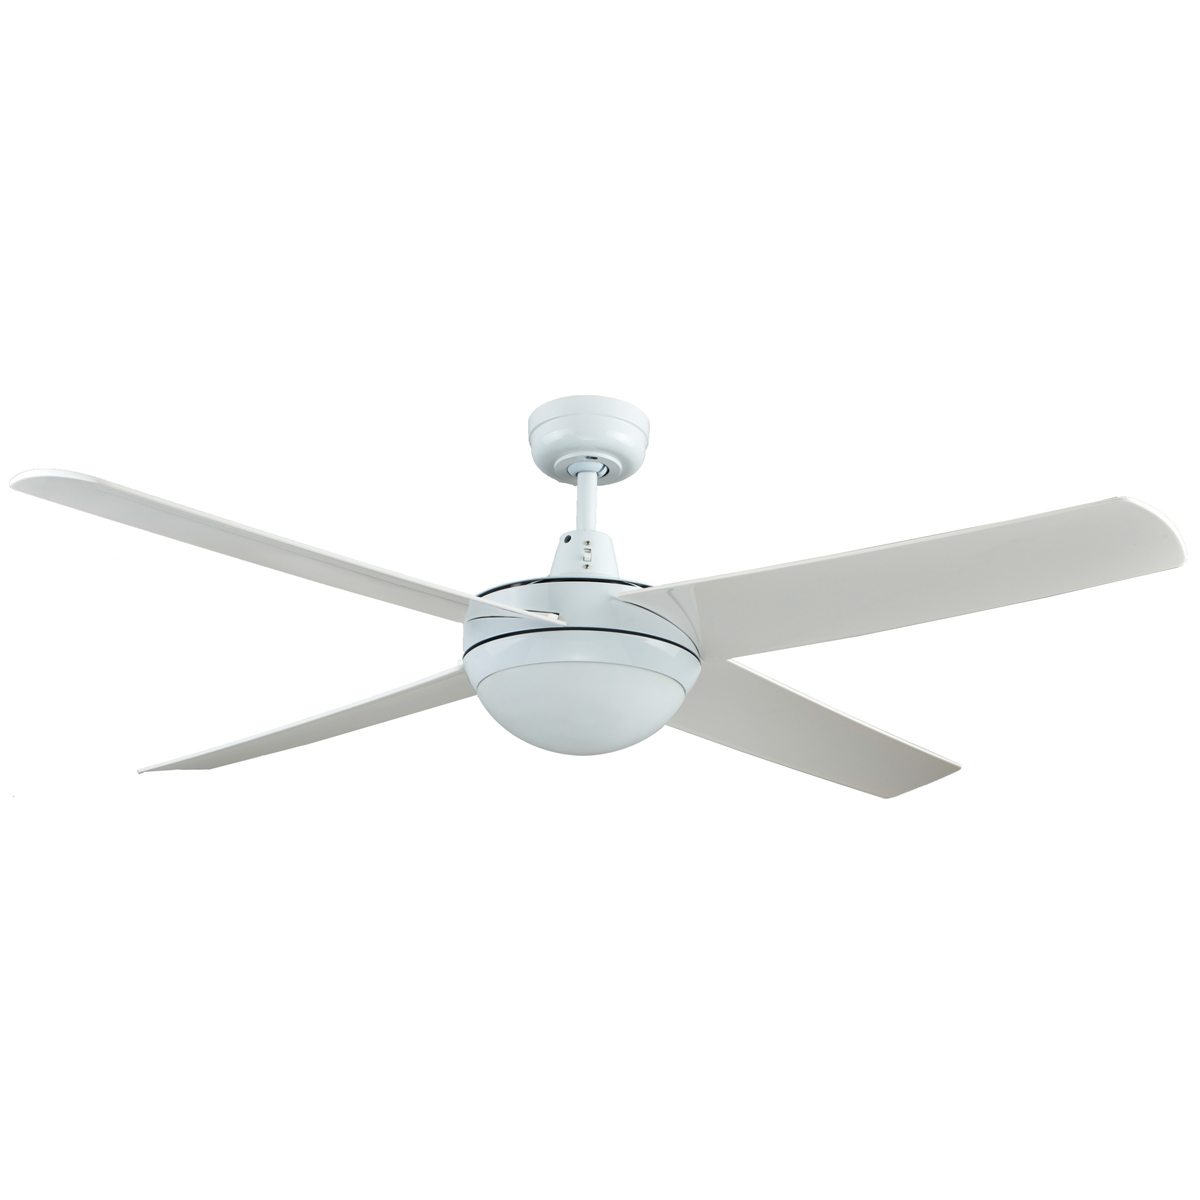 Rotor 52 Inch LED Ceiling Fan with ABS Blades in White | Ceiling Fan ...